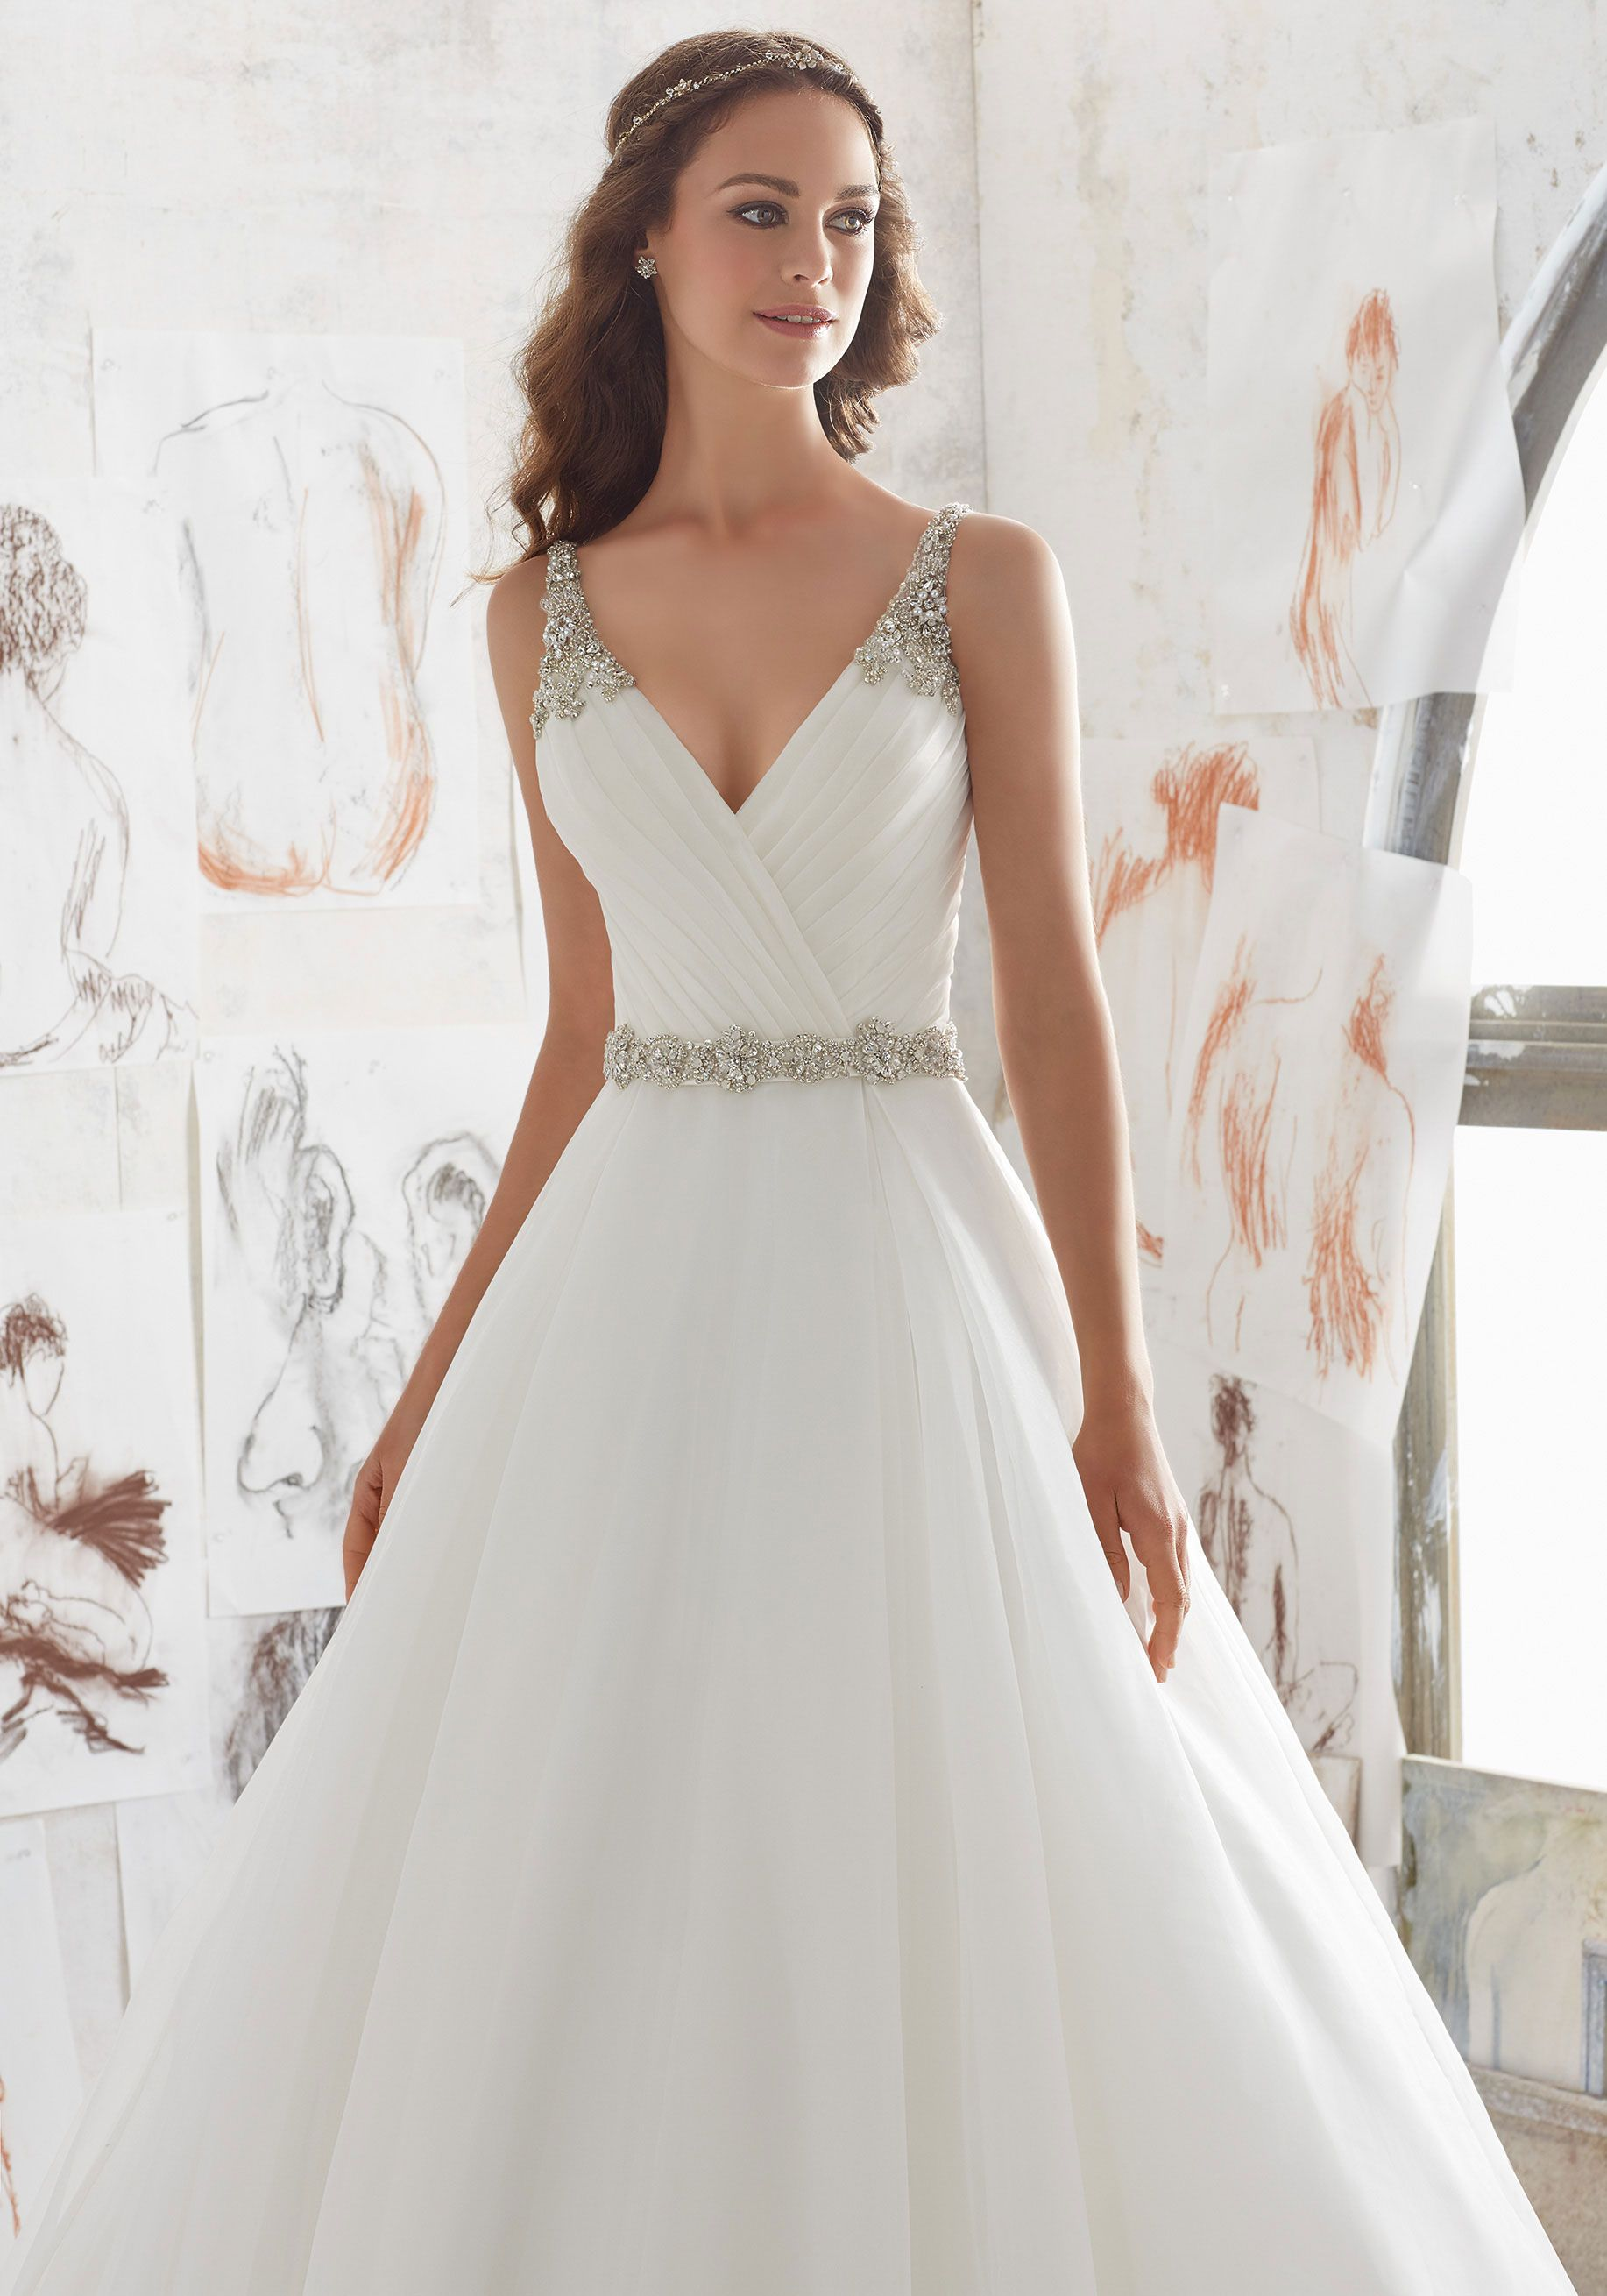 Designer Wedding Dresses and Bridal Gowns by Morilee. This Organza ...